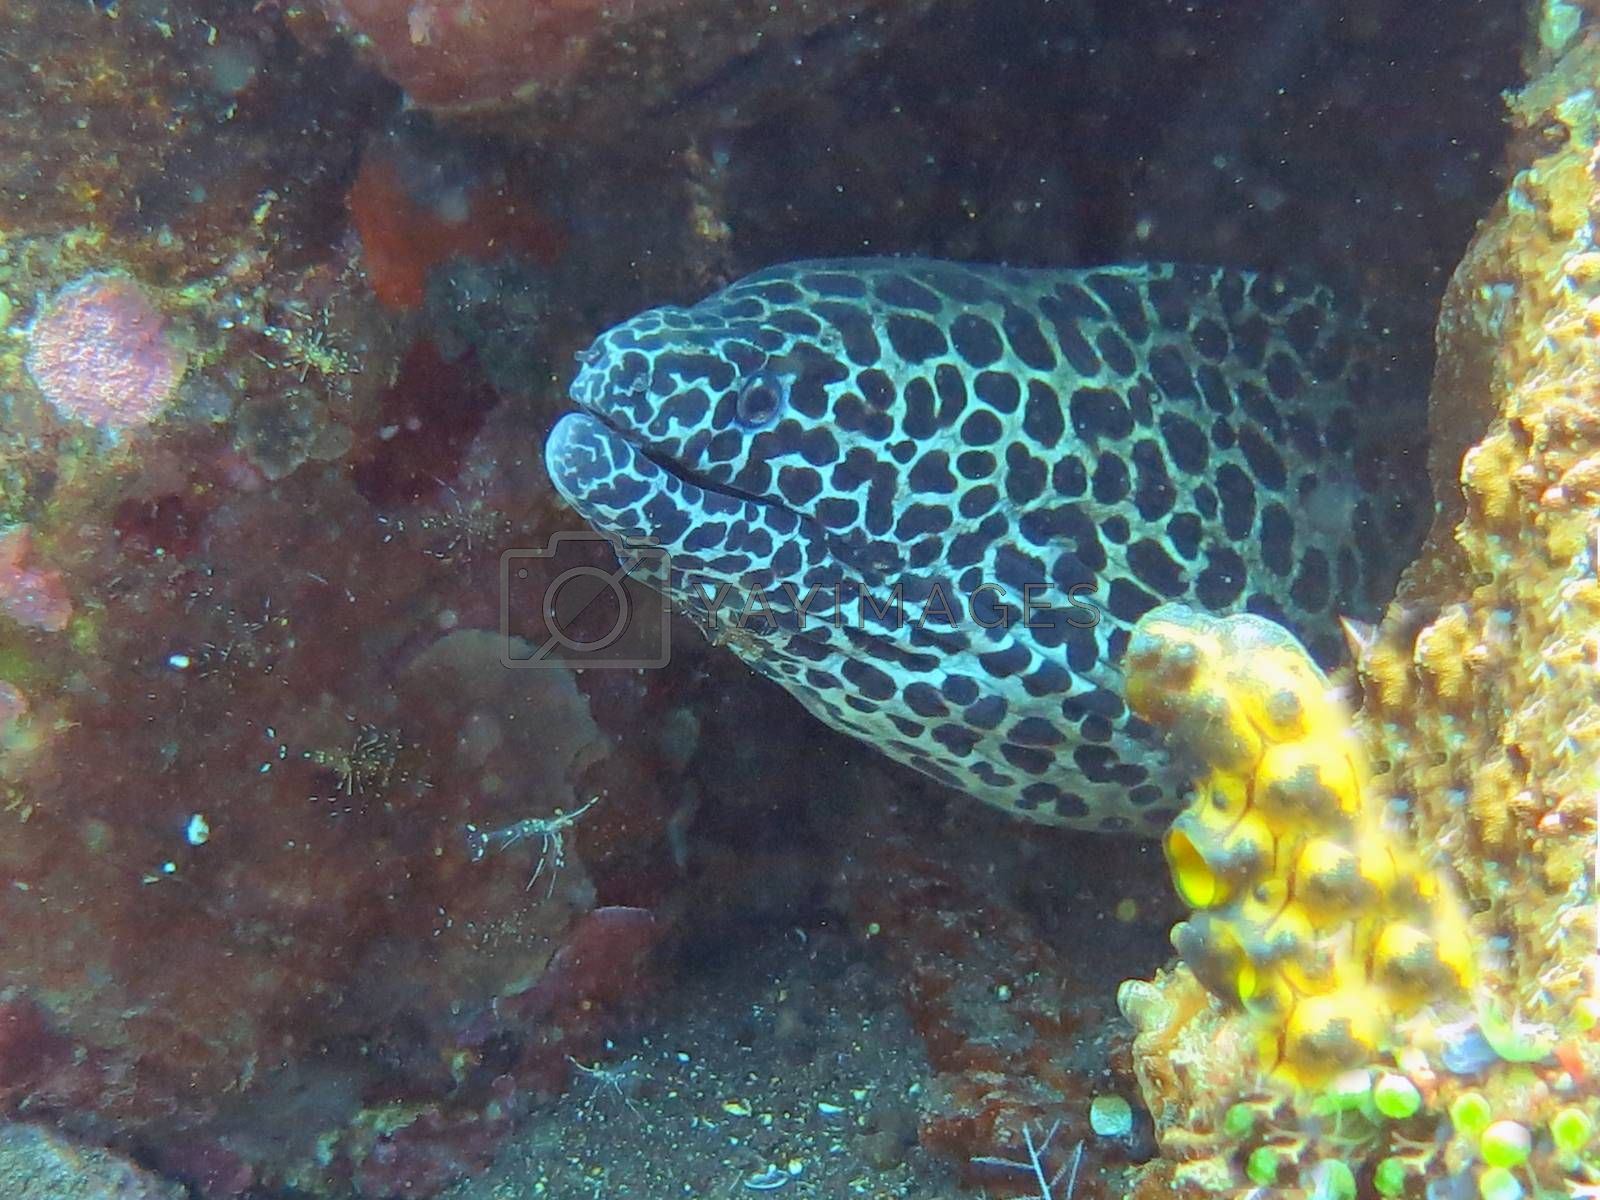 Giant spotted moray hiding  amongst coral reef on the ocean floor, Bali.